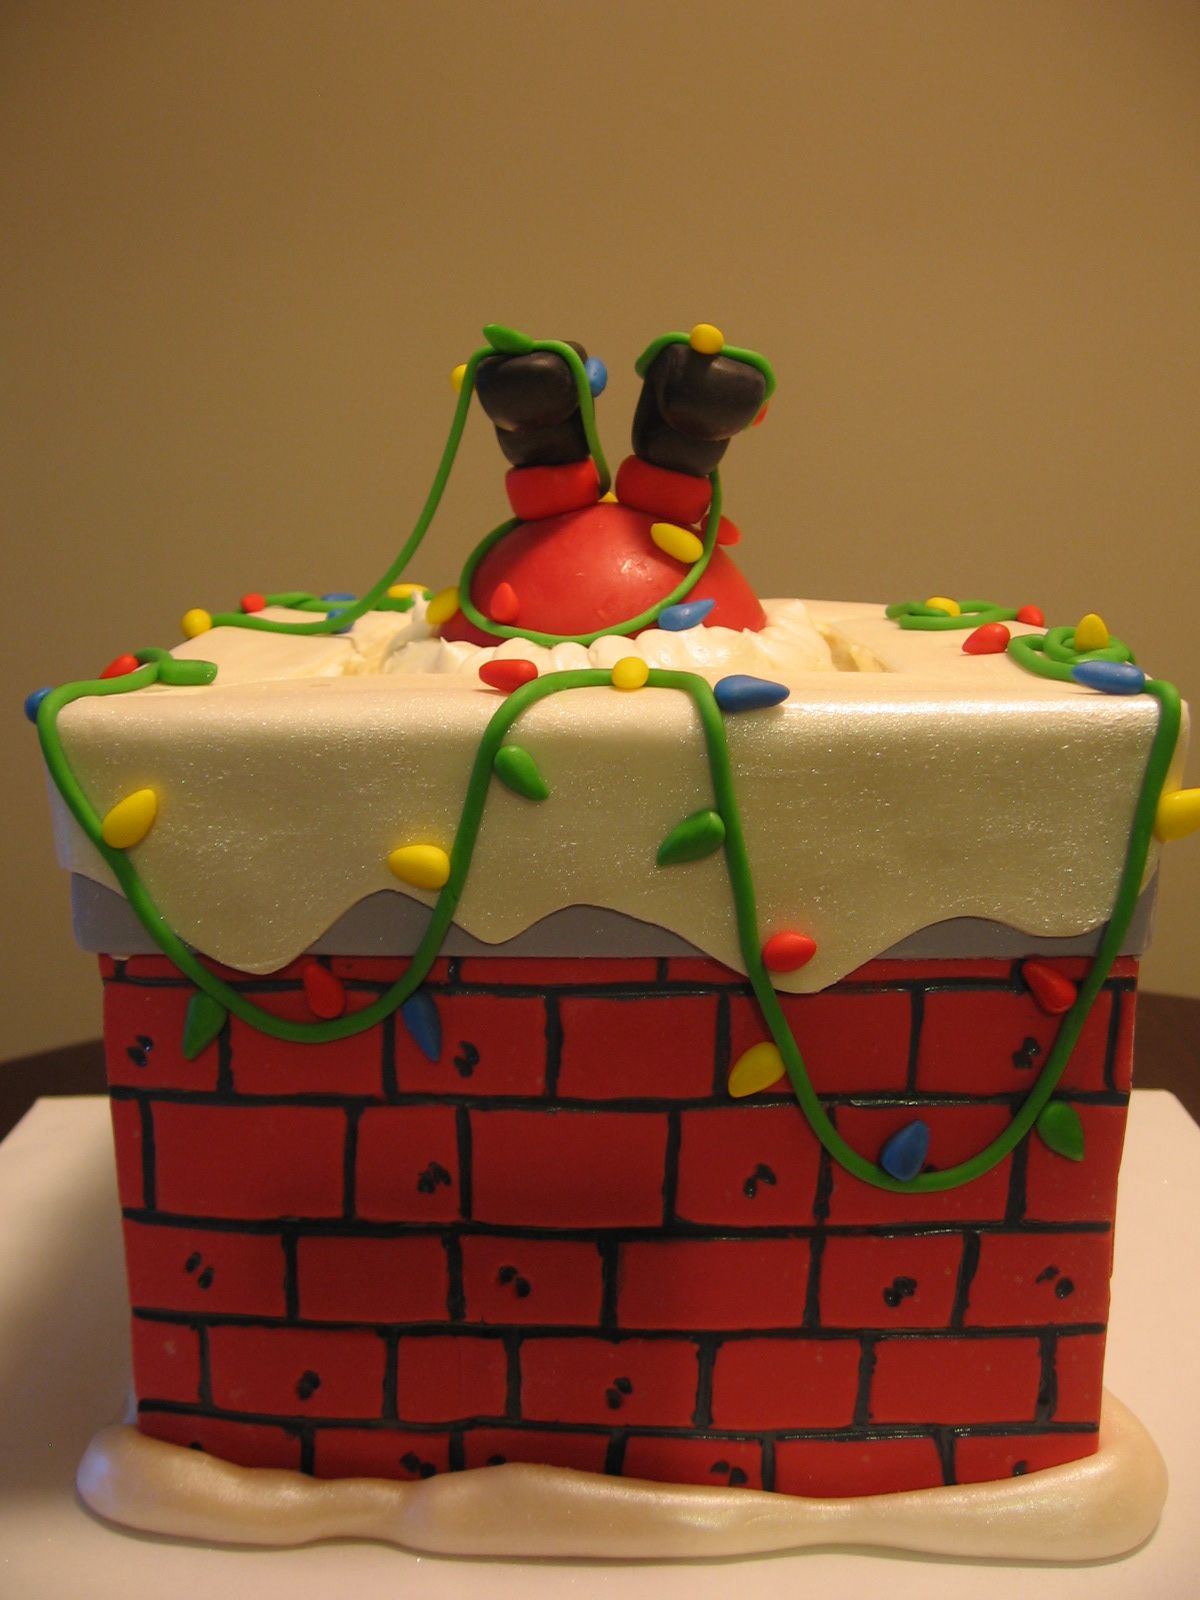 Einfacher Fondant Kuchen When Santa Got Stuck In The Chimney Weihnachten